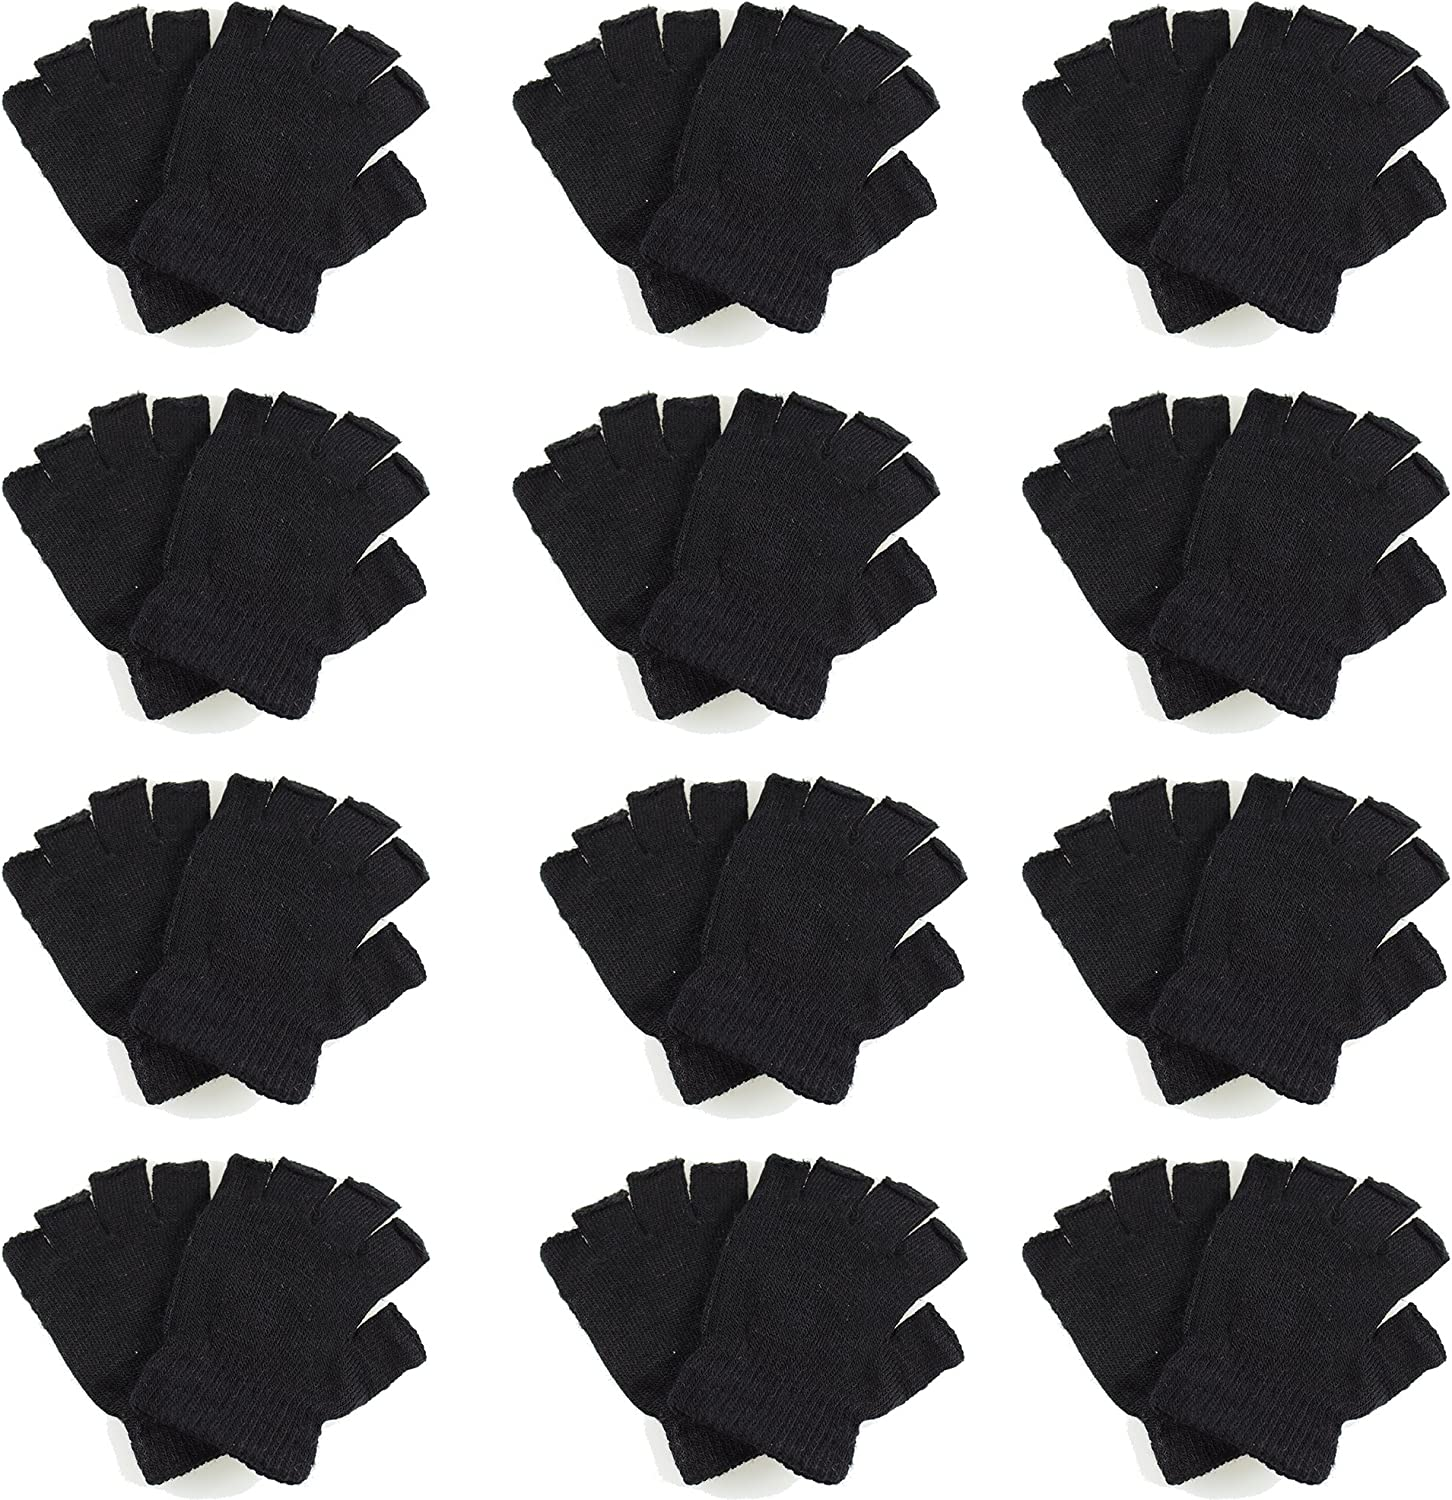 Gelante Classic Free Shipping New Adult Winter Fingerless Who service Magic Knitted Gloves